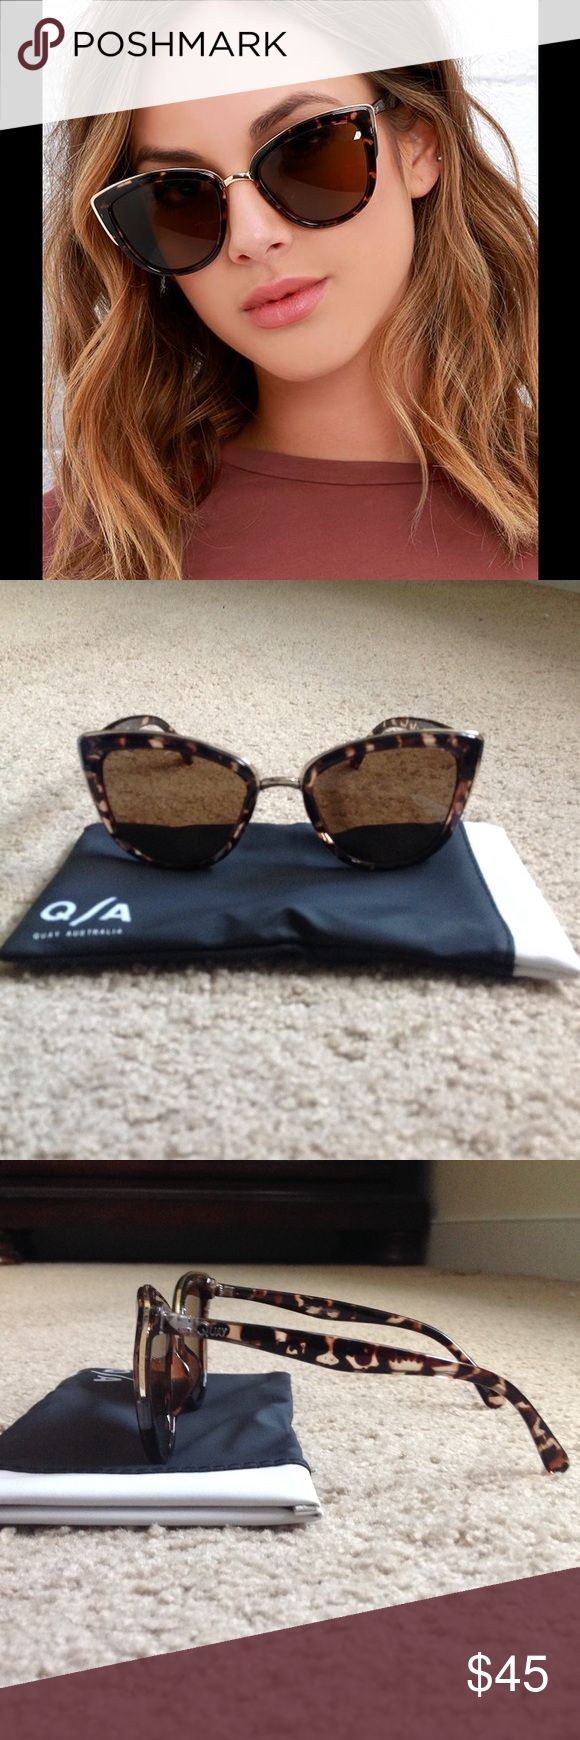 Quay Australia Sunglasses Brand new, never worn. Oversized cat eye sunnies feature plastic-coated metal frames, tortoise and gold. Quay glasses holder included. Quay Australia Accessories Glasses